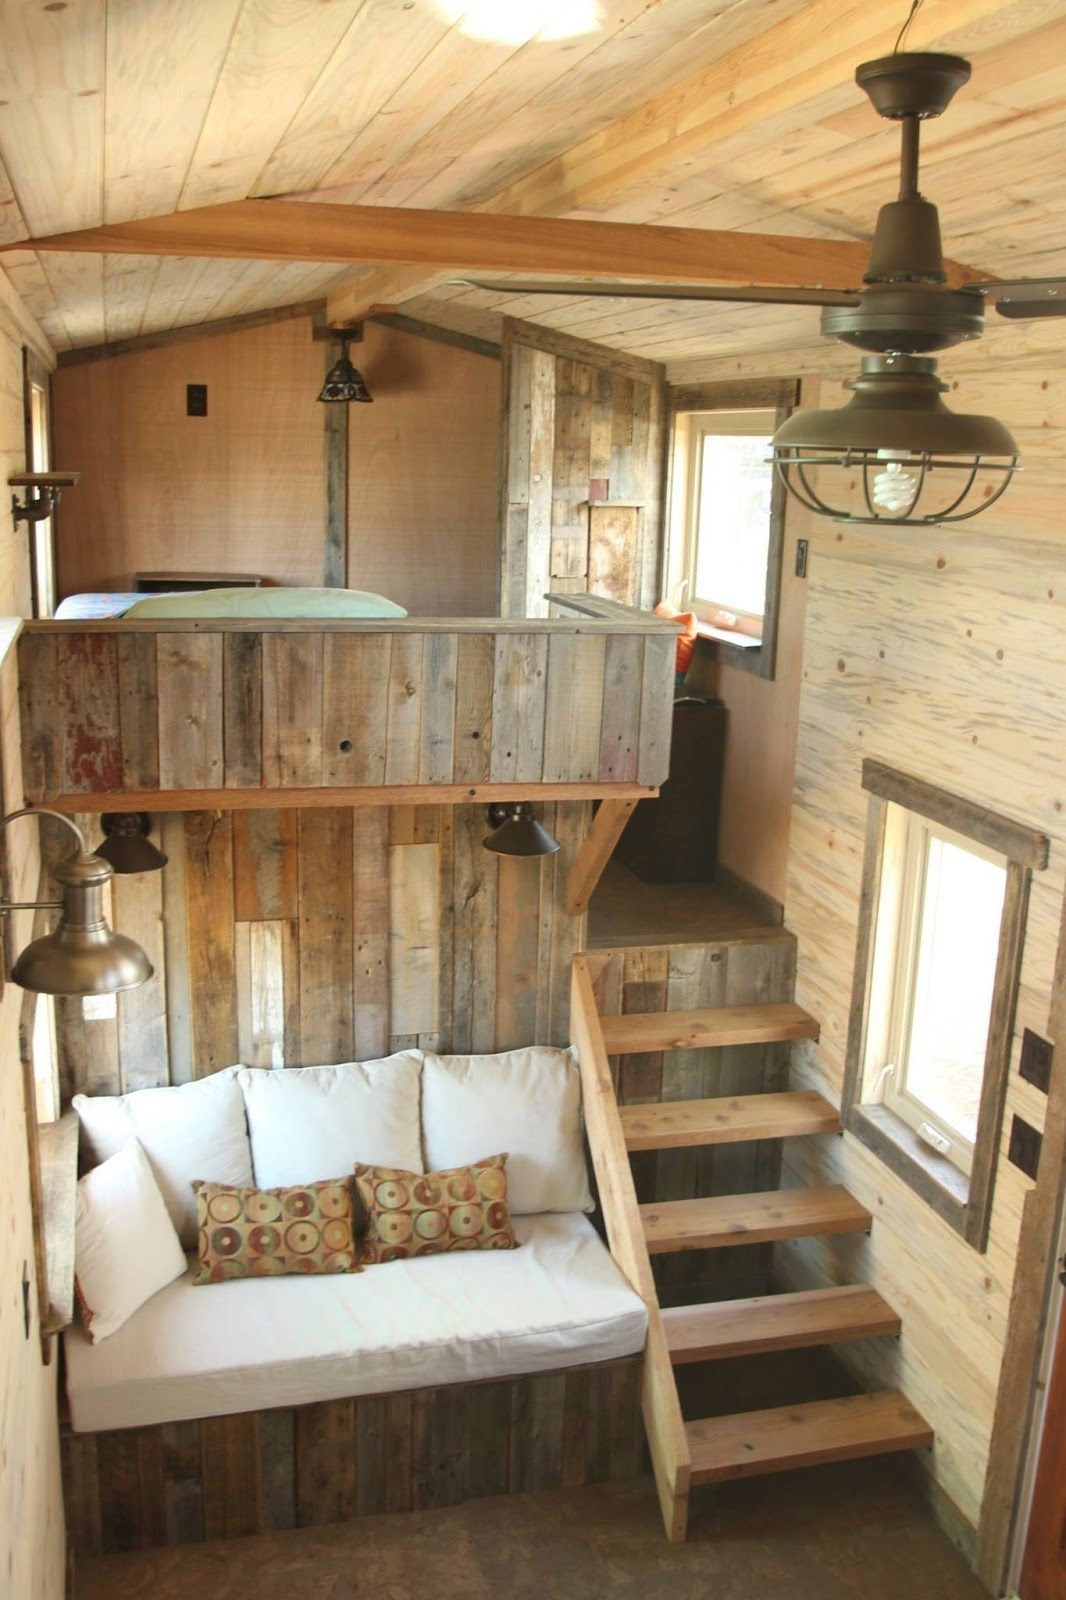 Awesome Tiny Home Designs on off the grid homes, awesome container homes, pinterest small homes, awesome boats, awesome smaller homes, awesome huge homes, awesome beach, awesome bikes, awesome food, awesome underwater homes, awesome photography, awesome white homes, awesome houses, awesome barn homes, awesome small homes,